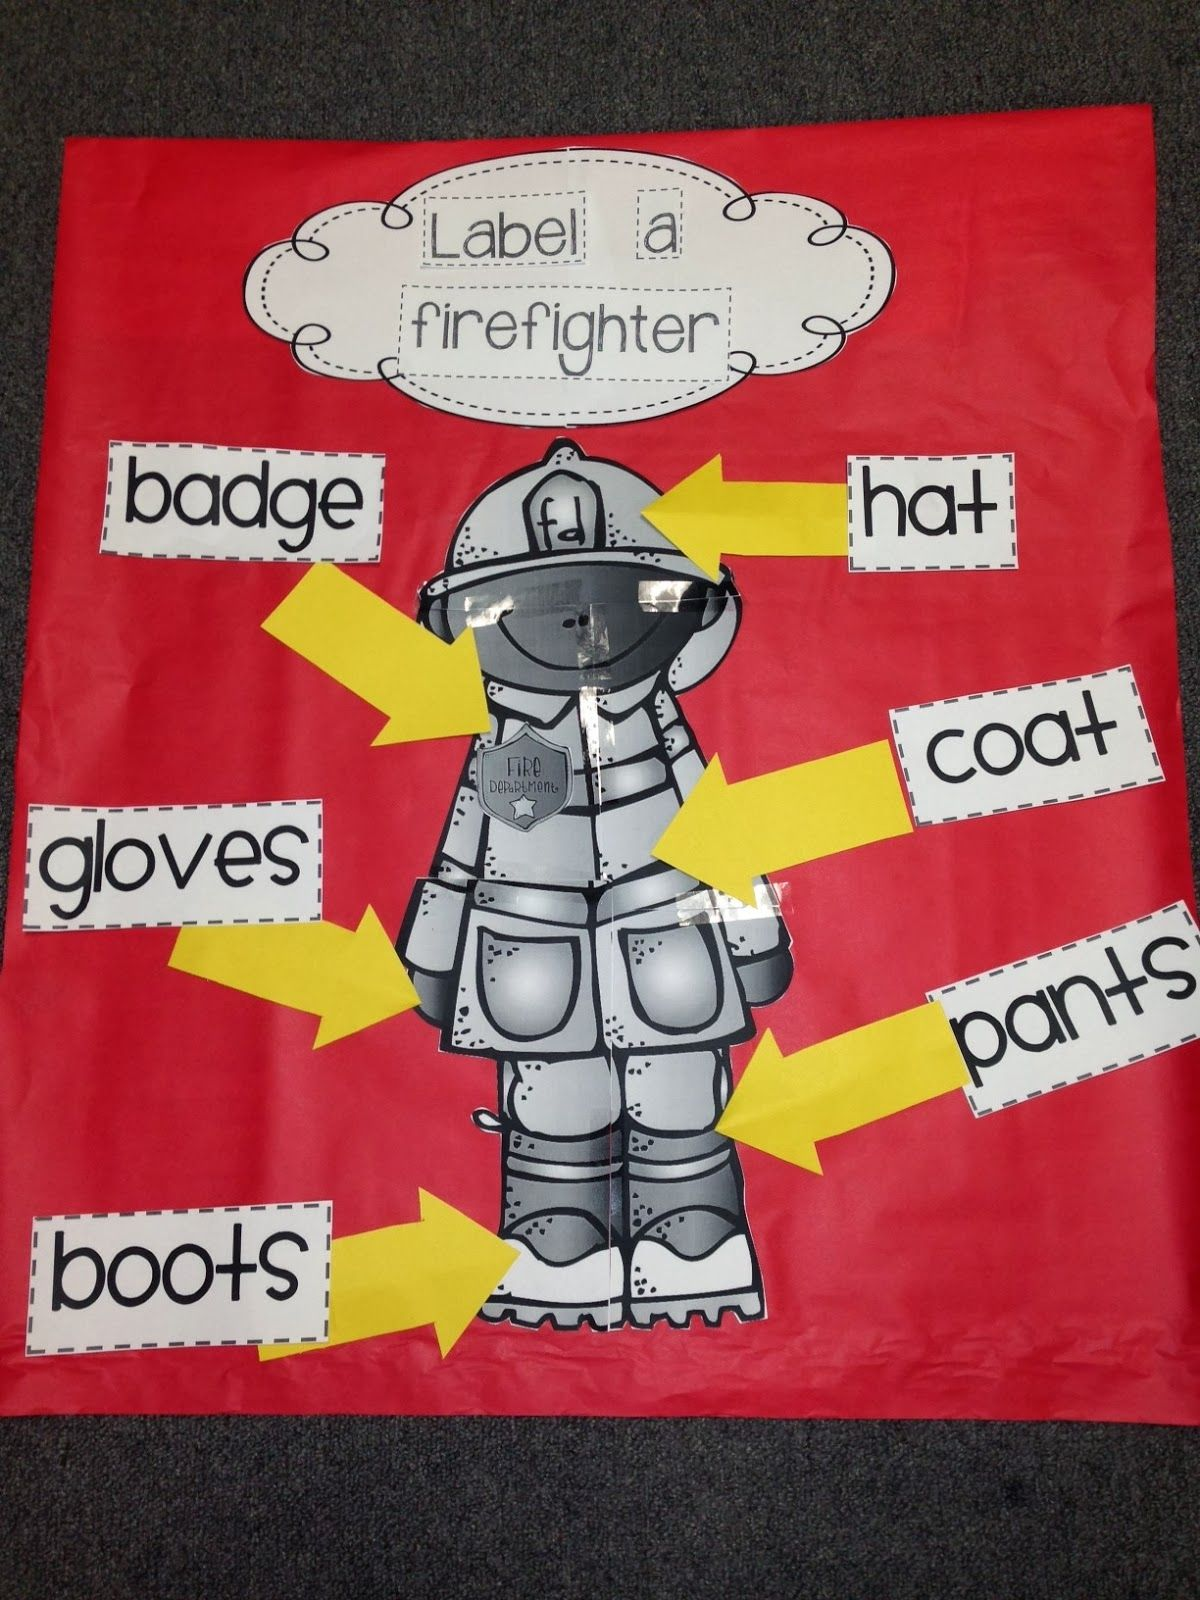 Firefighter Worksheets For Preschool